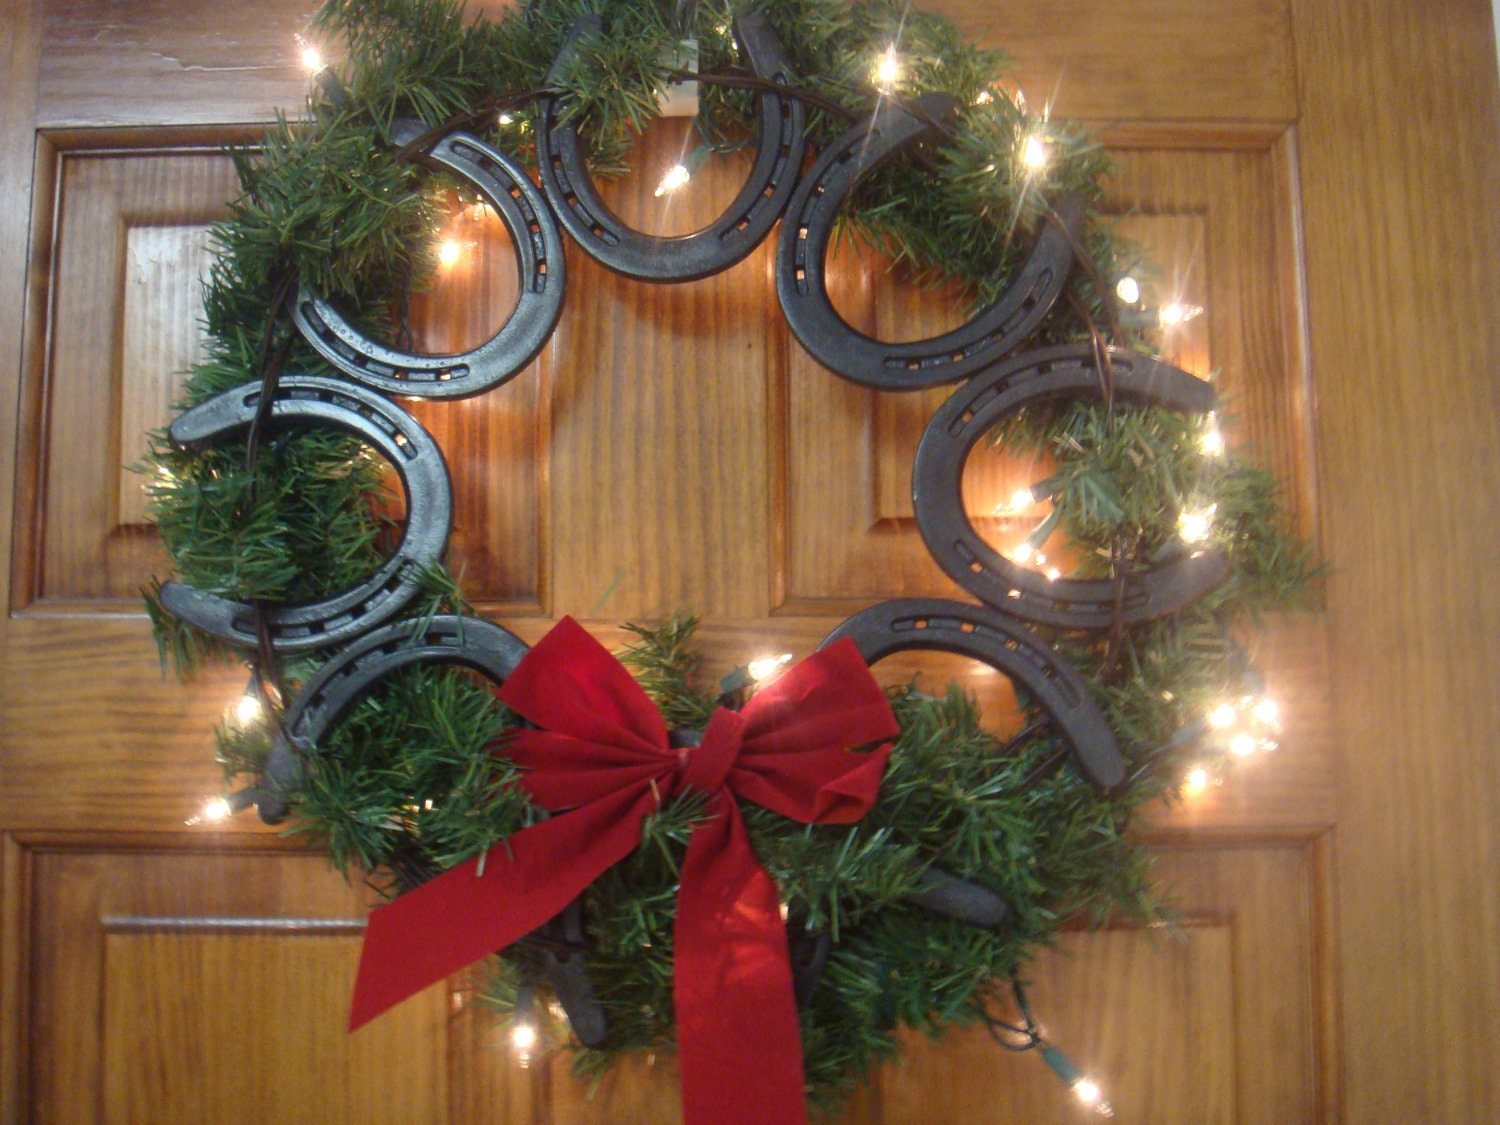 Horseshoe wreath for How to decorate horseshoes